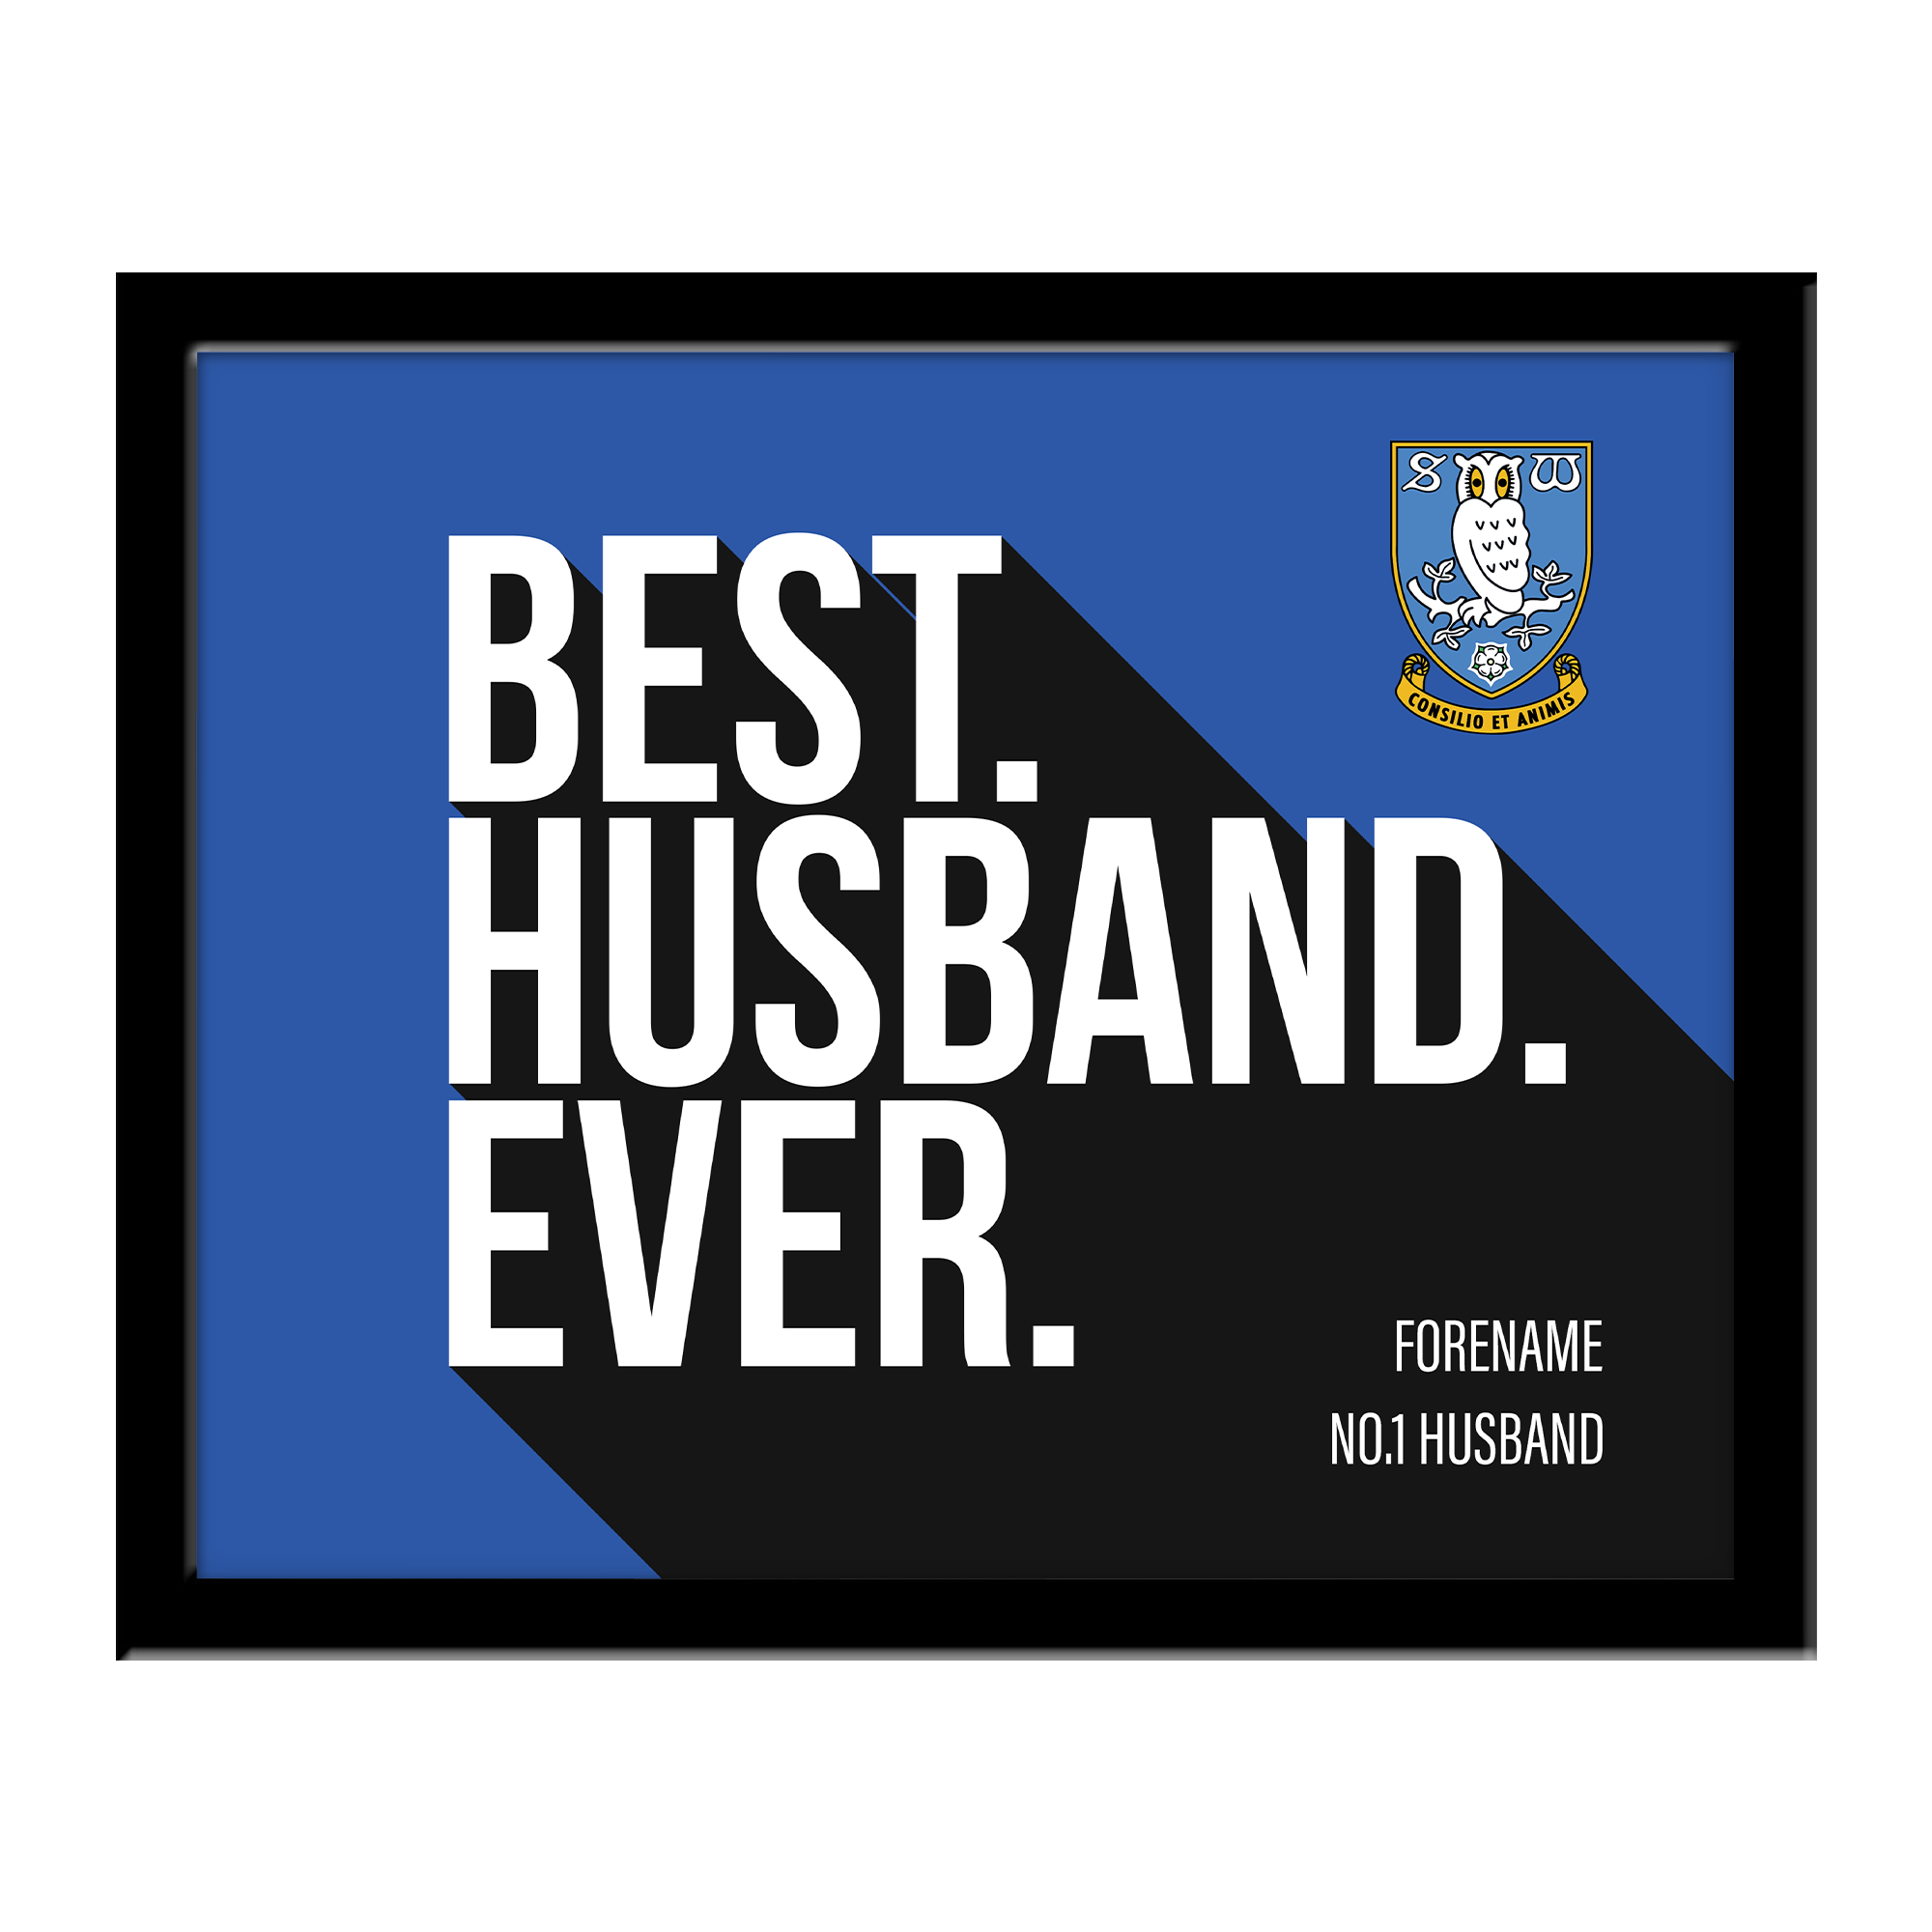 Sheffield Wednesday Best Husband Ever 10 x 8 Photo Framed